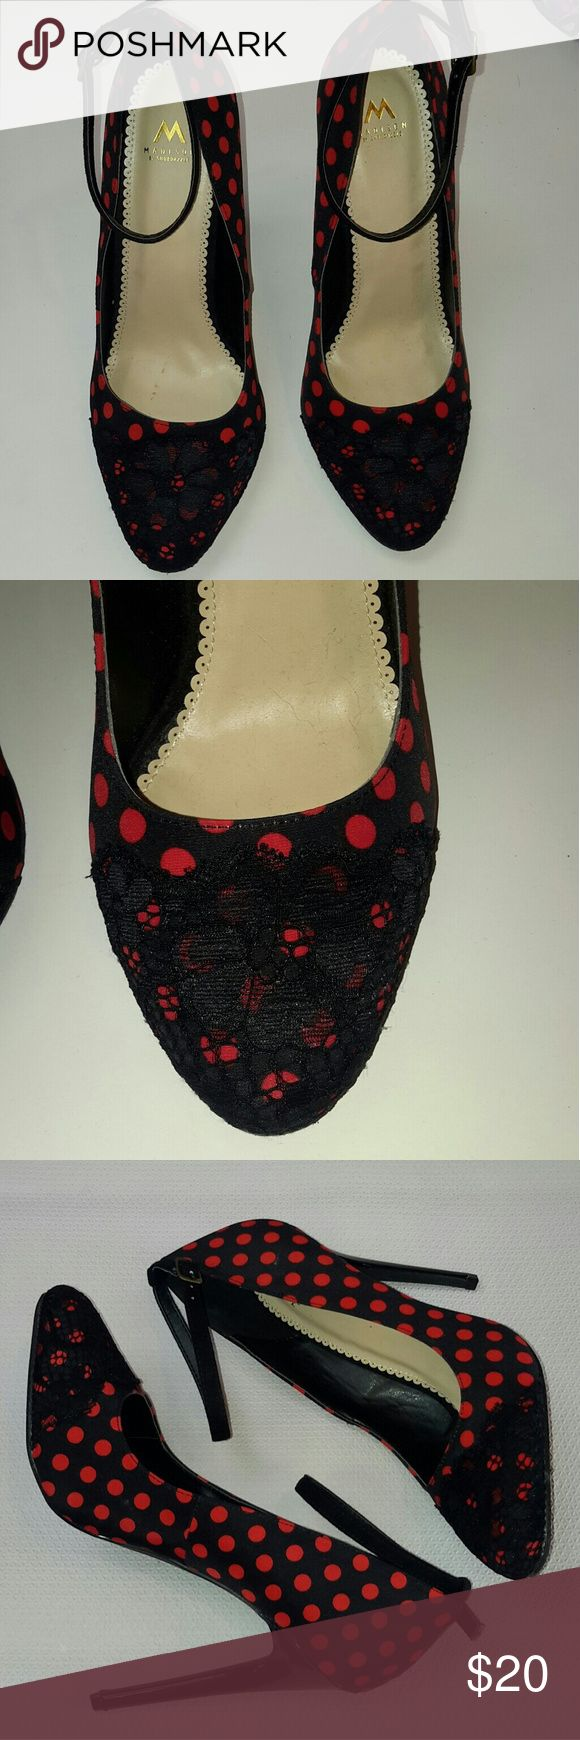 Black and Red polka dot heels 👠❤💋 Whats not to love about these beauties? The lace flowered toe or the red polka dots on a black background? Or maybe its the cute strap around the ankle? Either way, these are a must have! These just may be the cutest heels I have seen in a while! Great for work, date night, out on the town or simple dress up day. Only worn a few times and in great condition! 1 Madison Shoes Heels